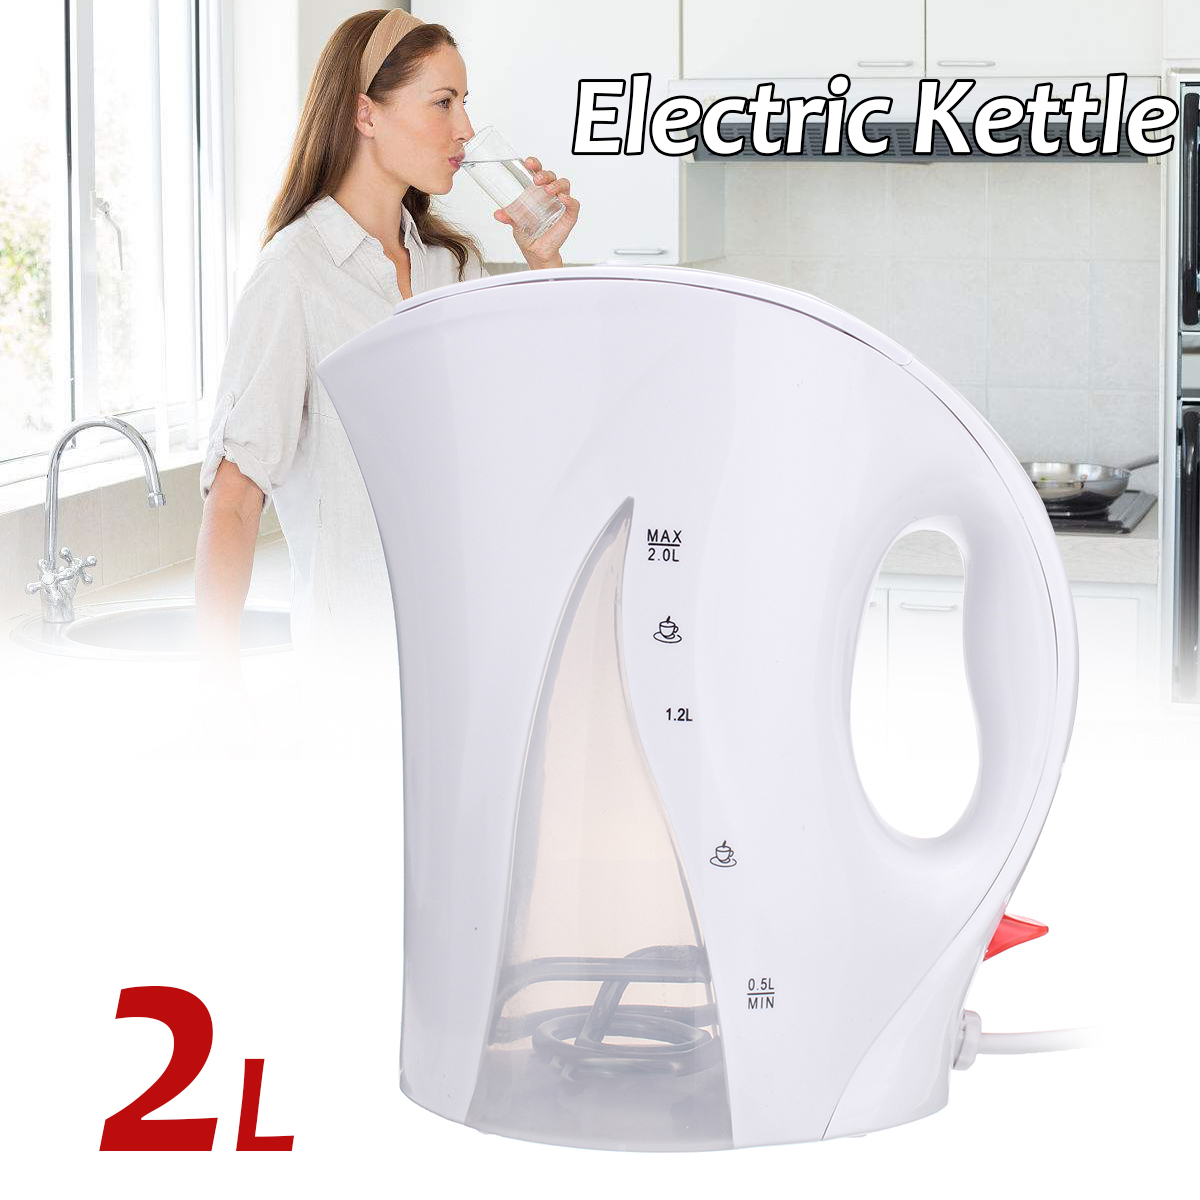 2L 1850-2200W Mini Electric Hot Water Kettle 220V Household Kitchen Travel Camping Portable Water Heating Boiler Heater Kettles цена и фото